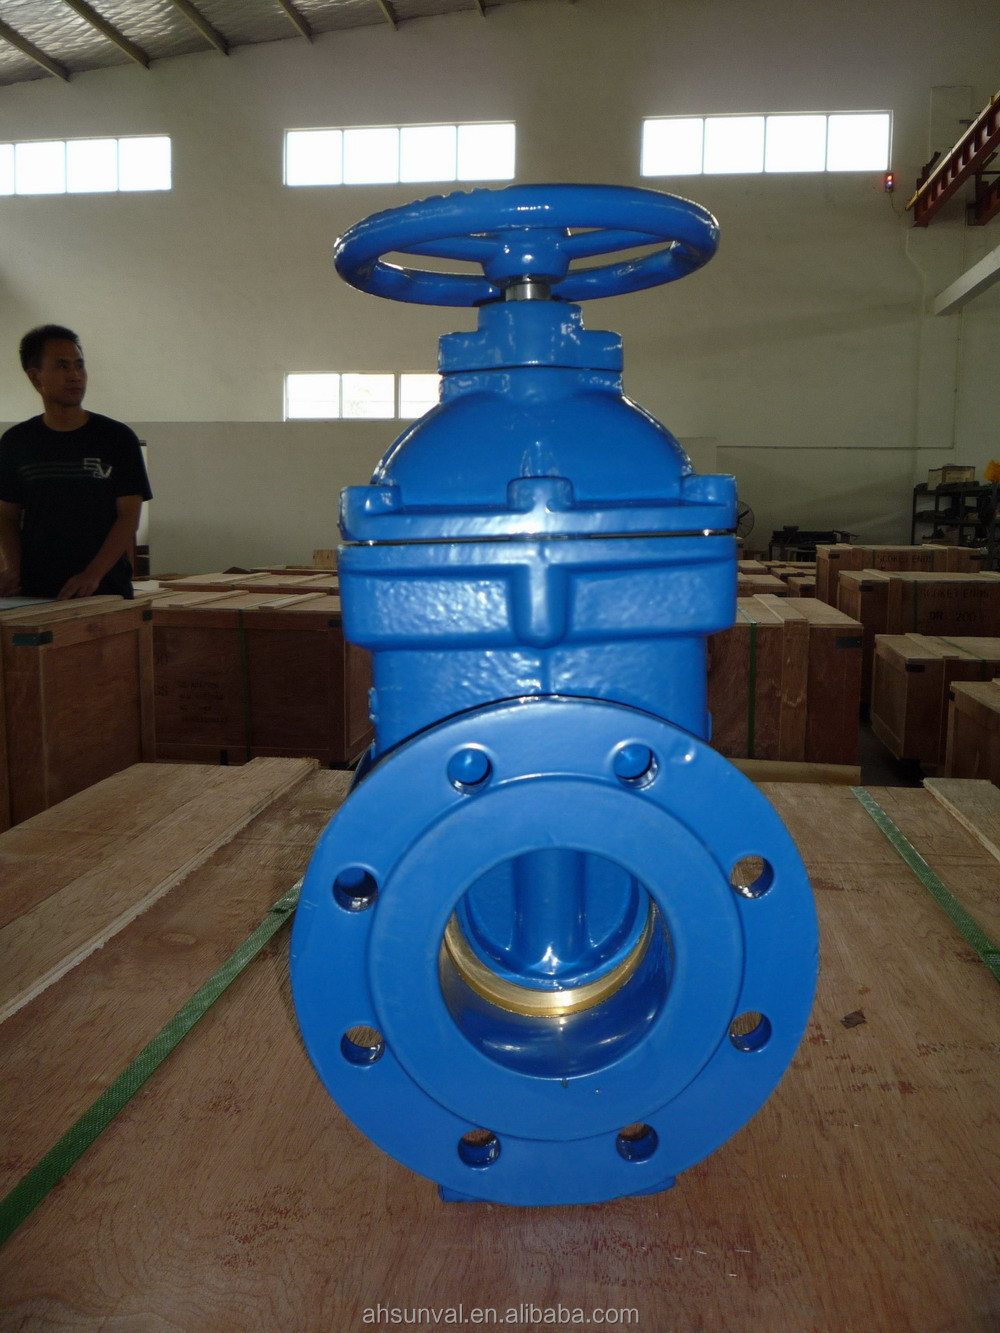 MEIJI brand gate valve metal seated DIN3352 F4